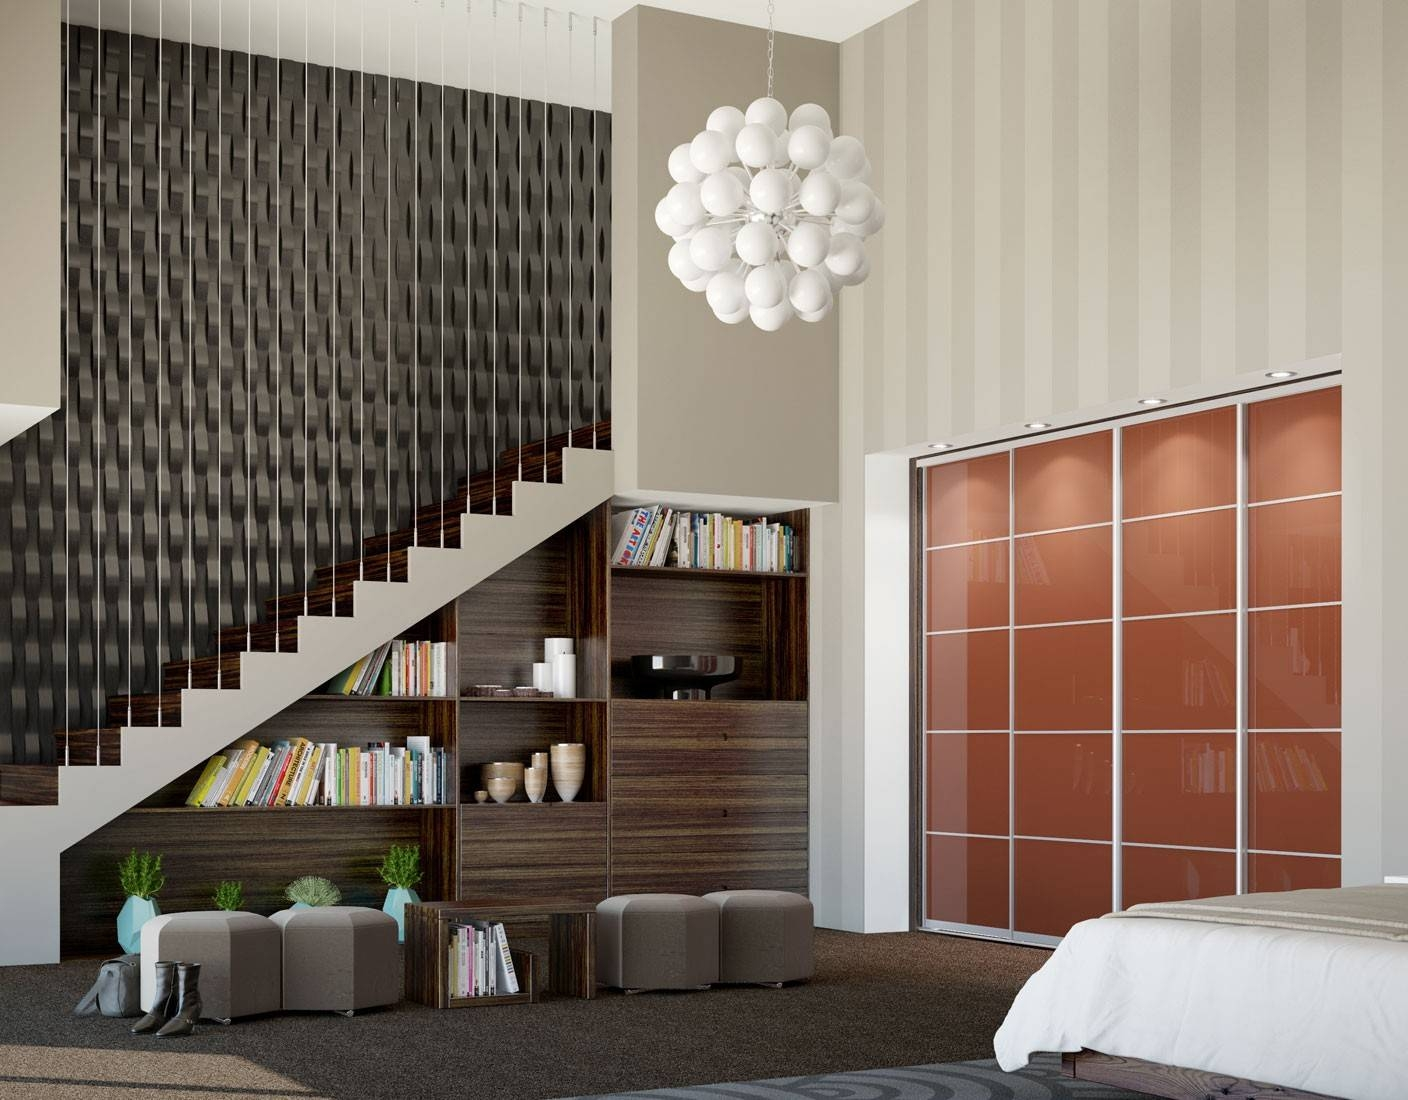 Quintessential - The Quintessential Range Of Sliding Fitted Wardrobes with regard to High Gloss Black Wardrobes (Image 9 of 15)